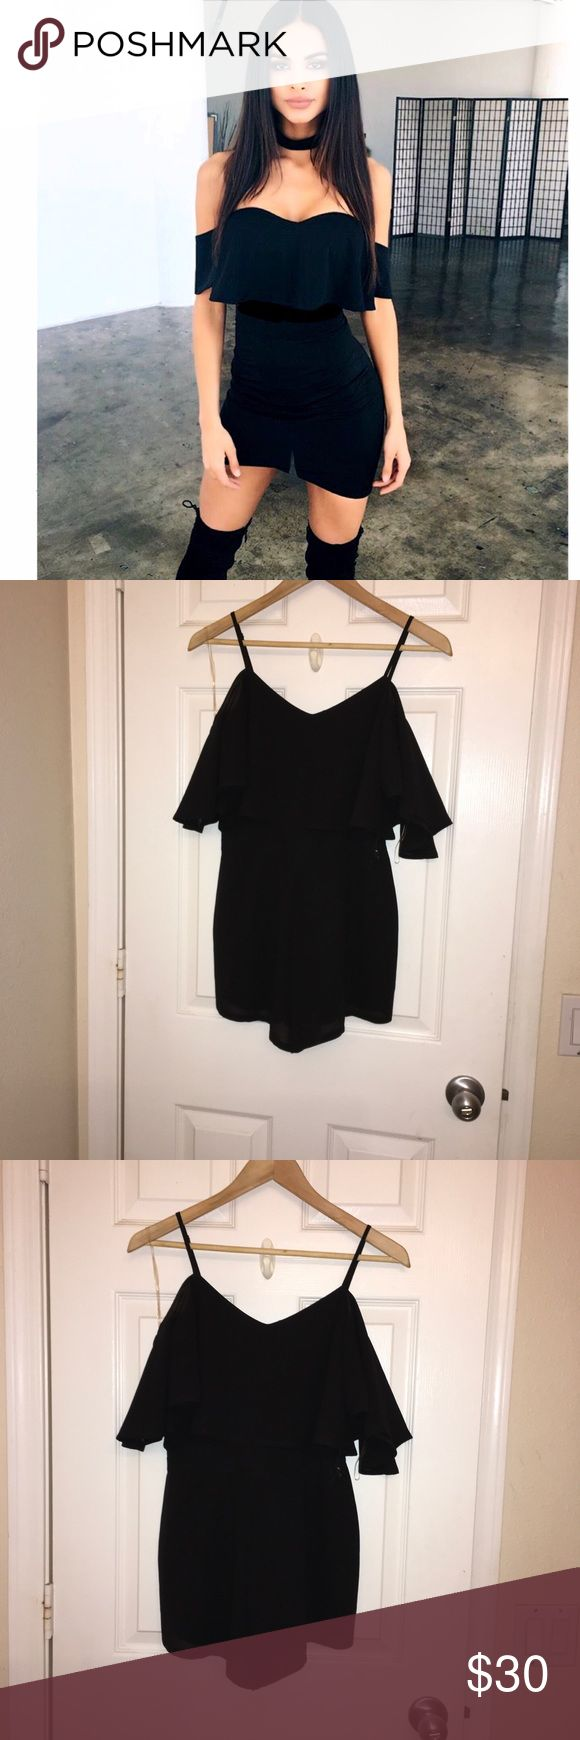 💘 Off Shoulder Black Romper 💘 Off Shoulder Black Romper Size small  Flowey, sleek, sheer material, semi stretchy, adjustable straps.  Sweetheart neckline, loose flow bottom, sleeveless, off the shoulder, romper shorts.  Perfect new condition. Very comfortable & sexy. Easy to dress up or down Tilly's Dresses Mini